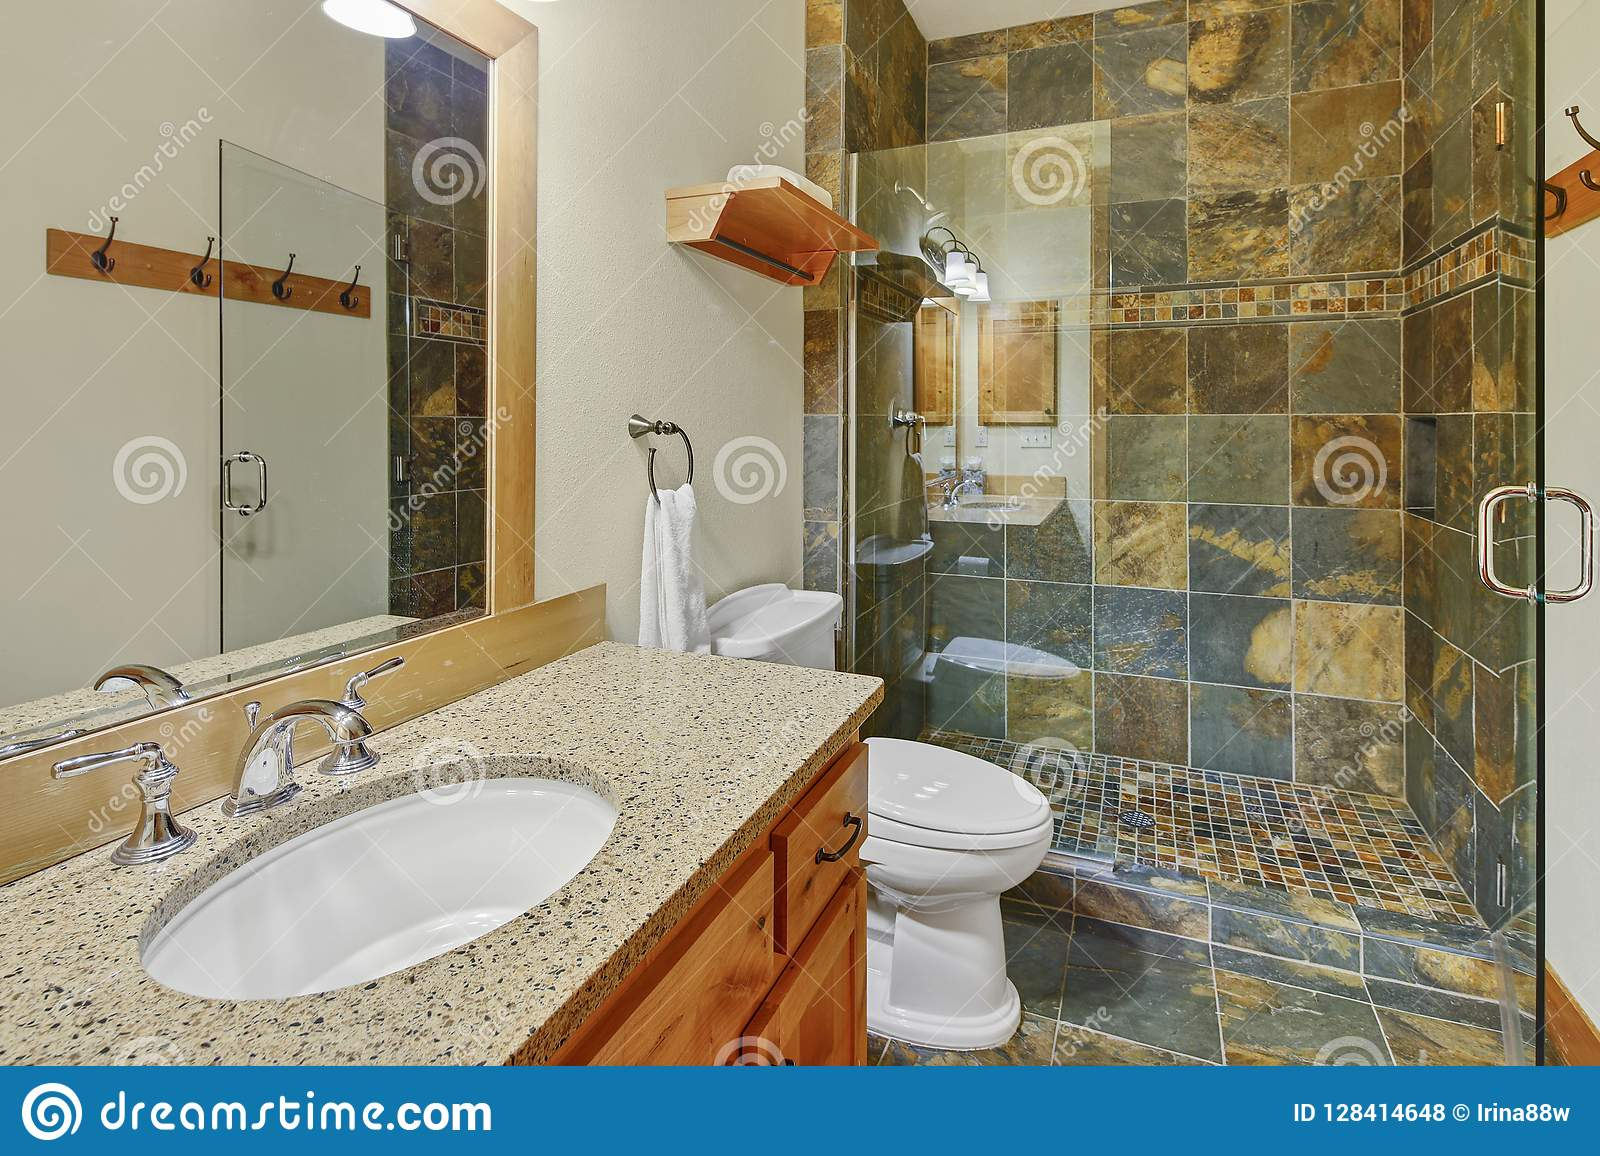 Luxury bathroom interior with natural stone tile